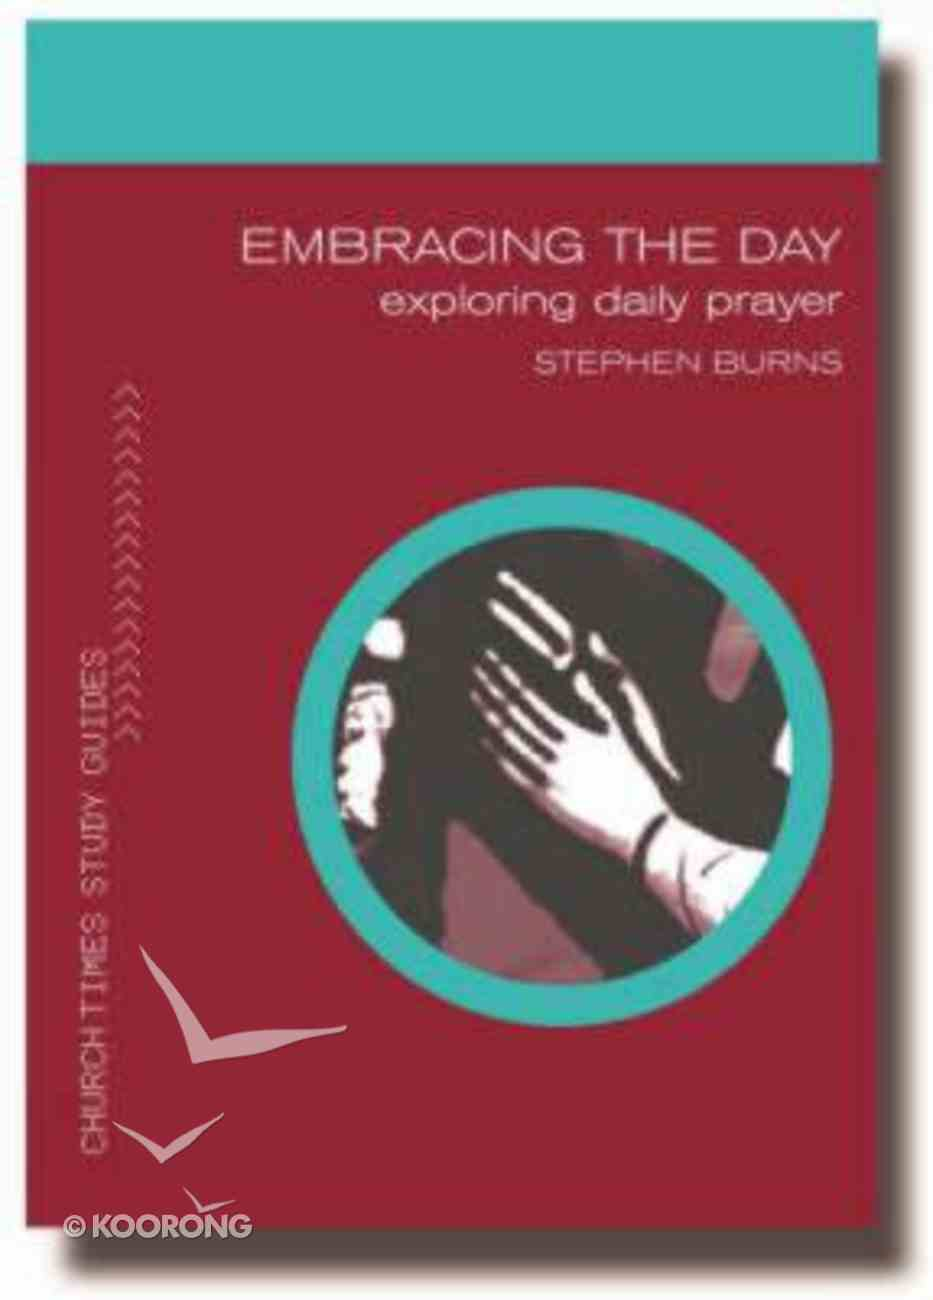 Embracing the Day (Church Times Study Guides Series) Paperback